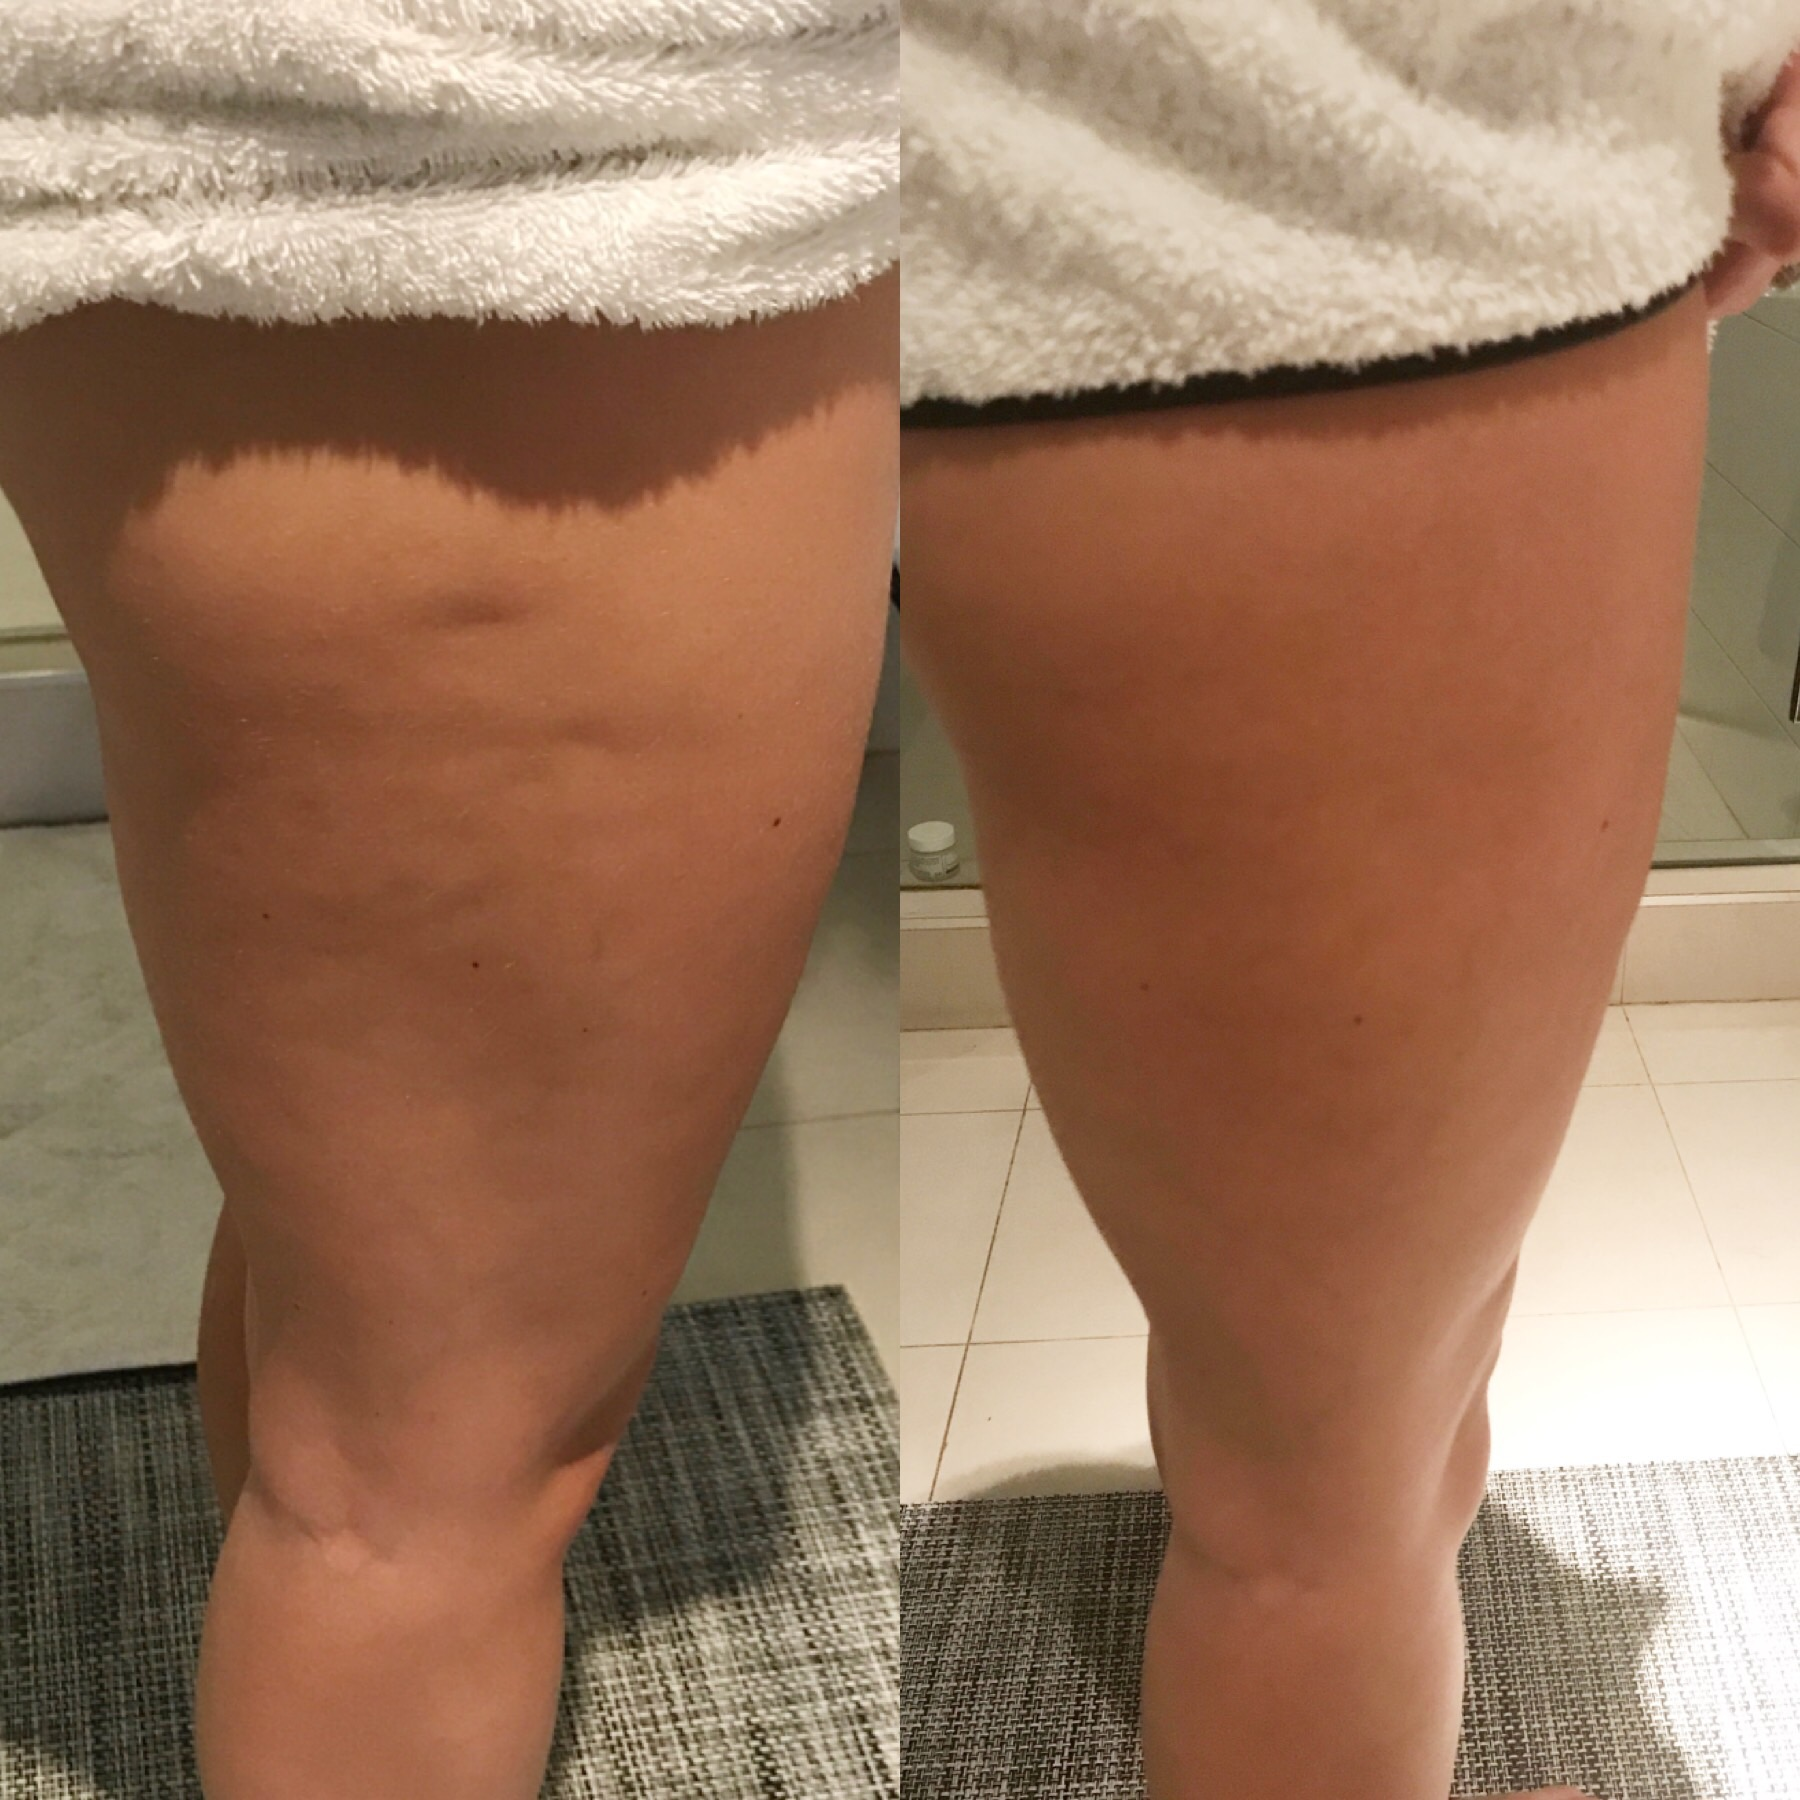 Cryoskin Toning Before After 1.JPG